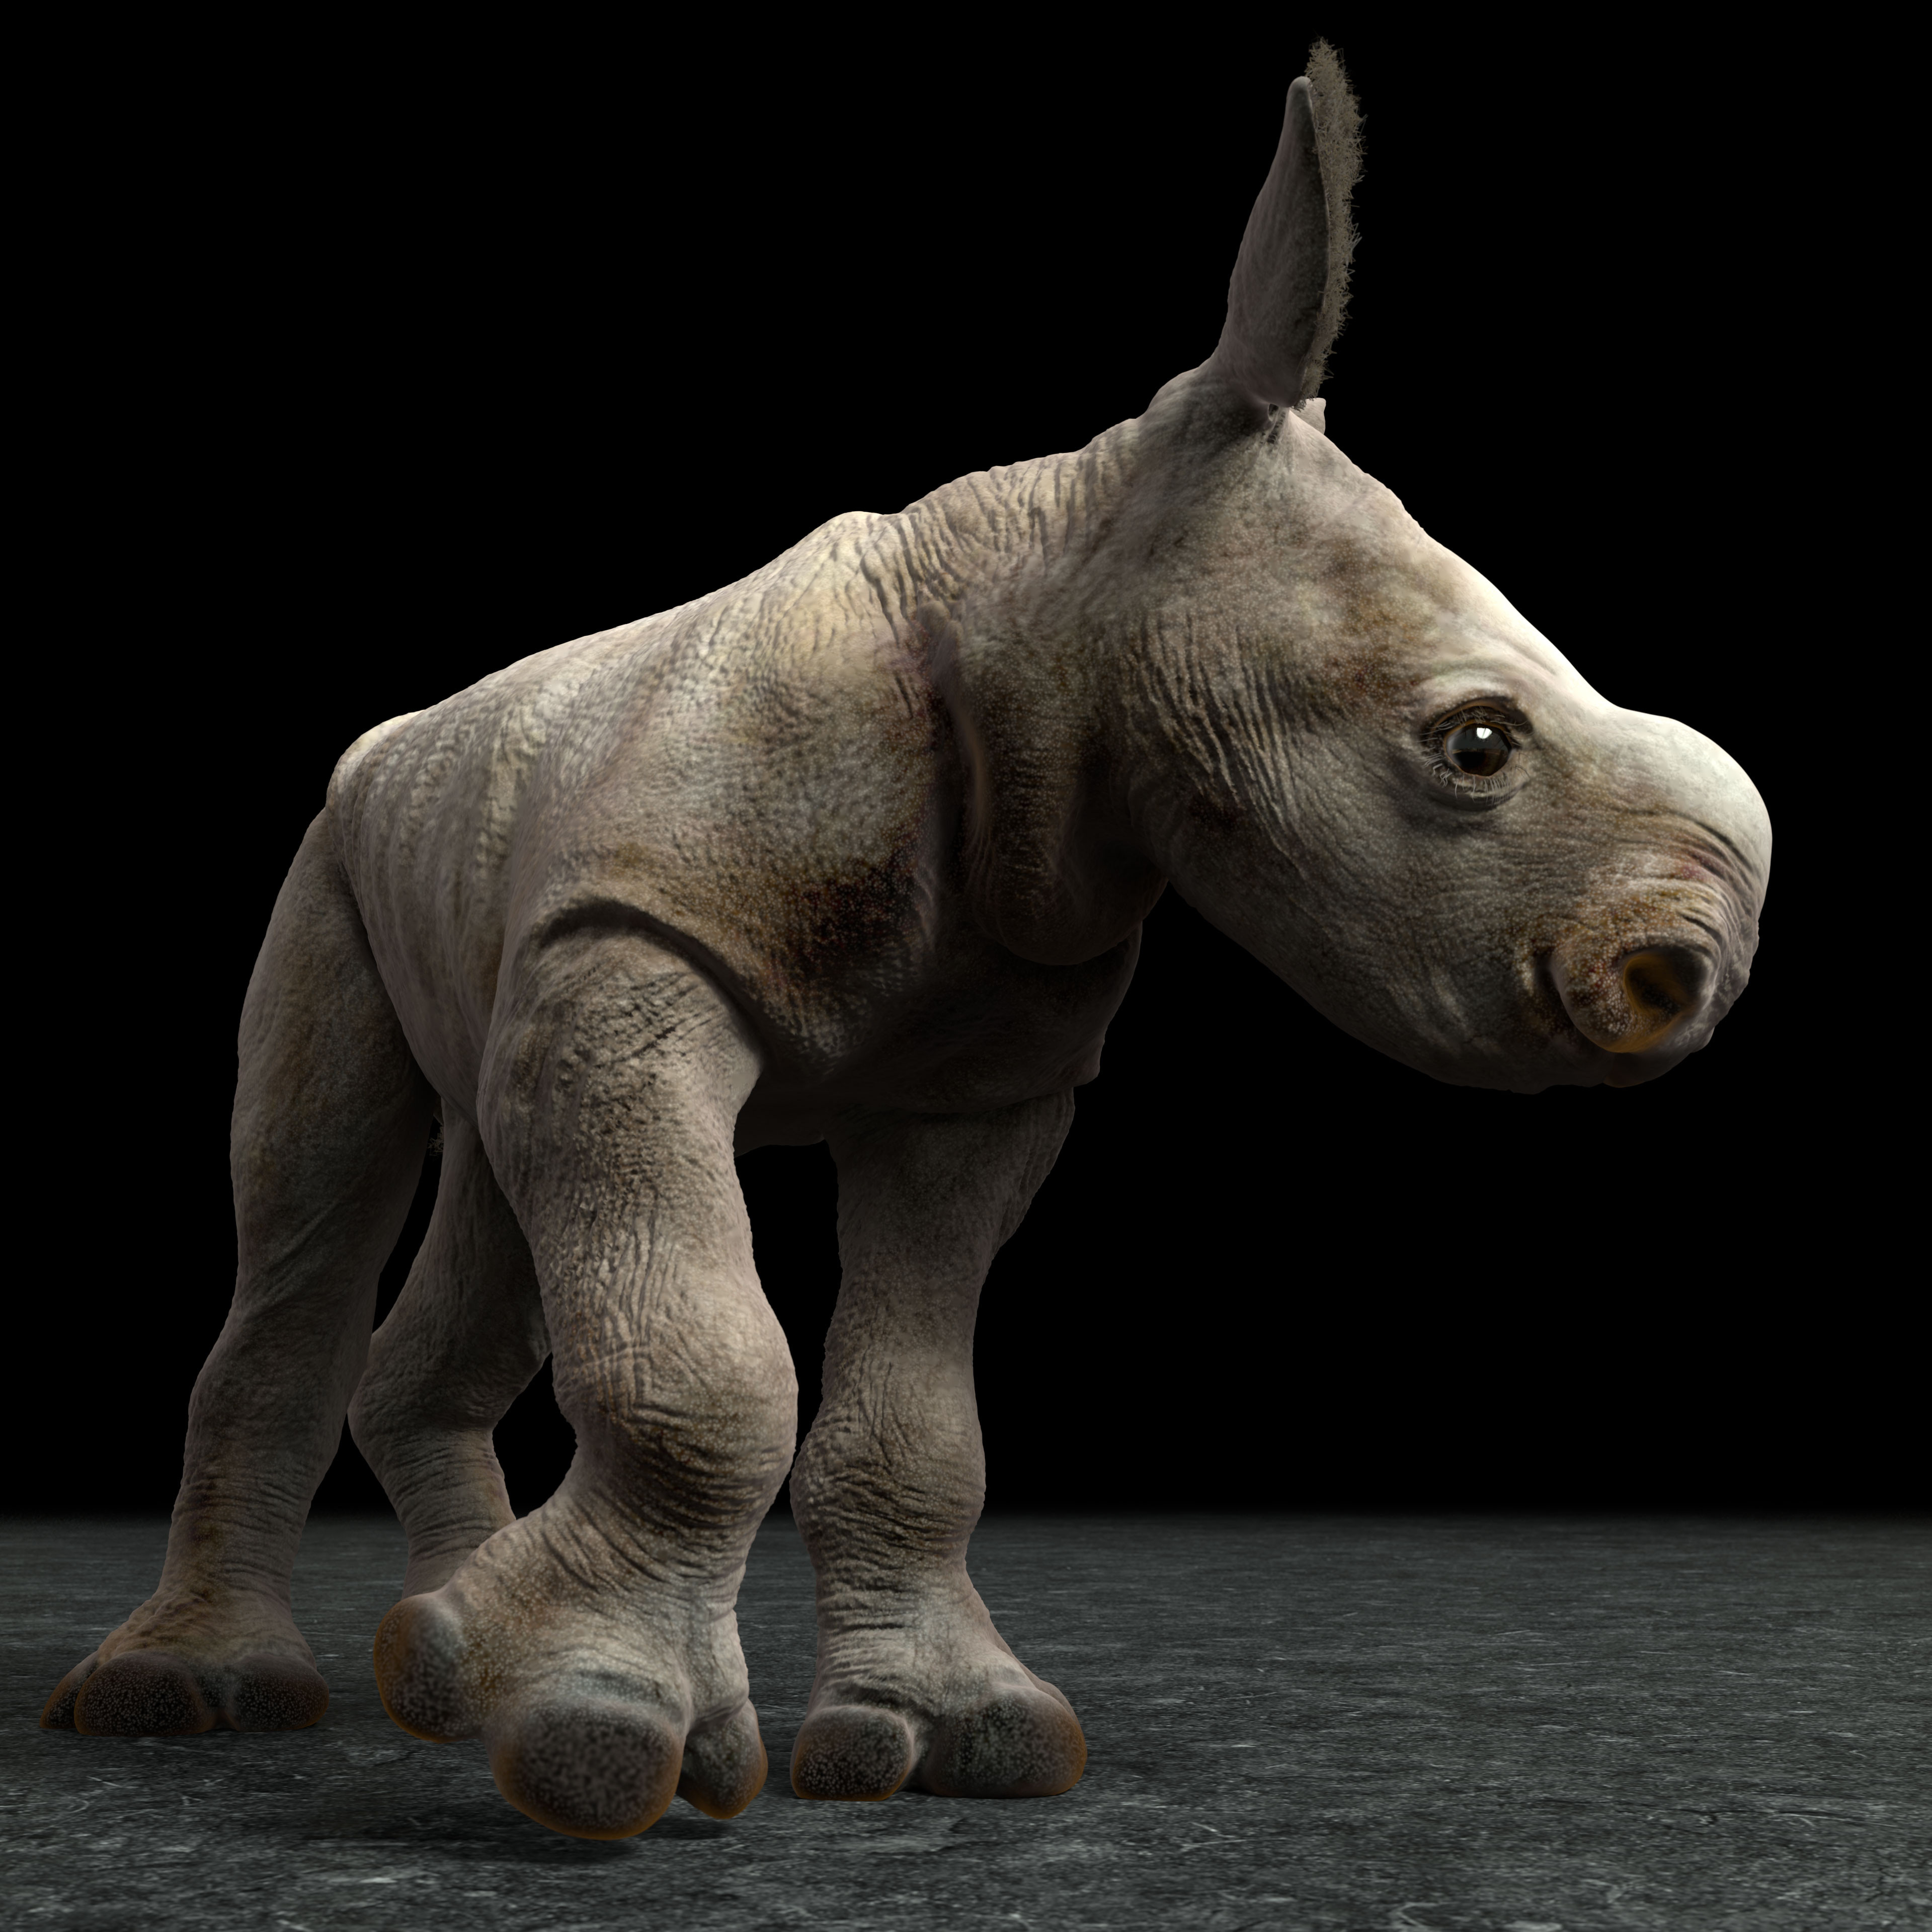 Revisited the white rhino calf after I did the Sumatran. Much better this way.